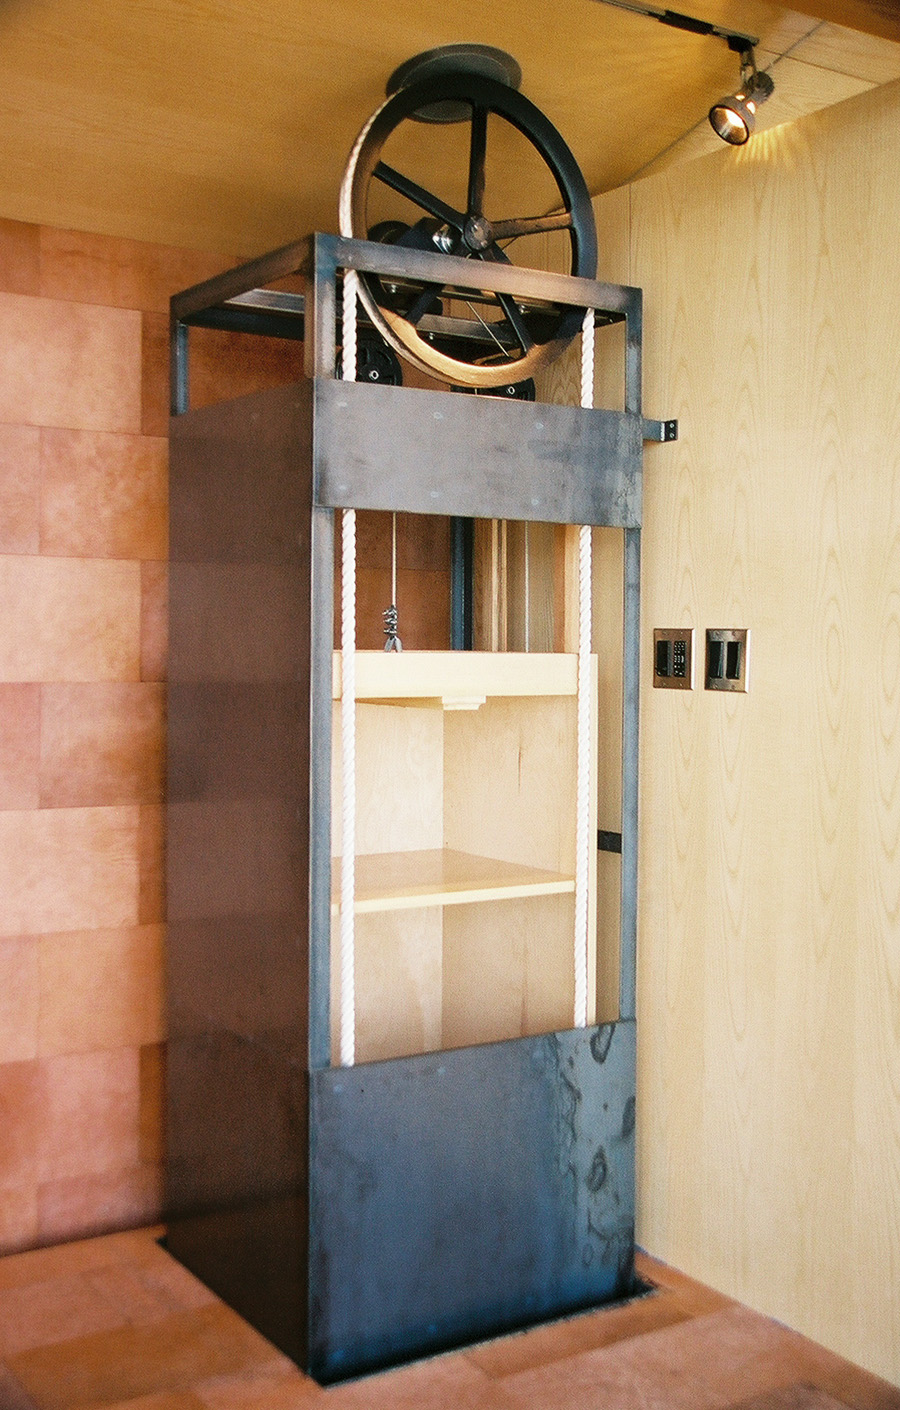 Containers pulley systems folio for Diy home elevator plans